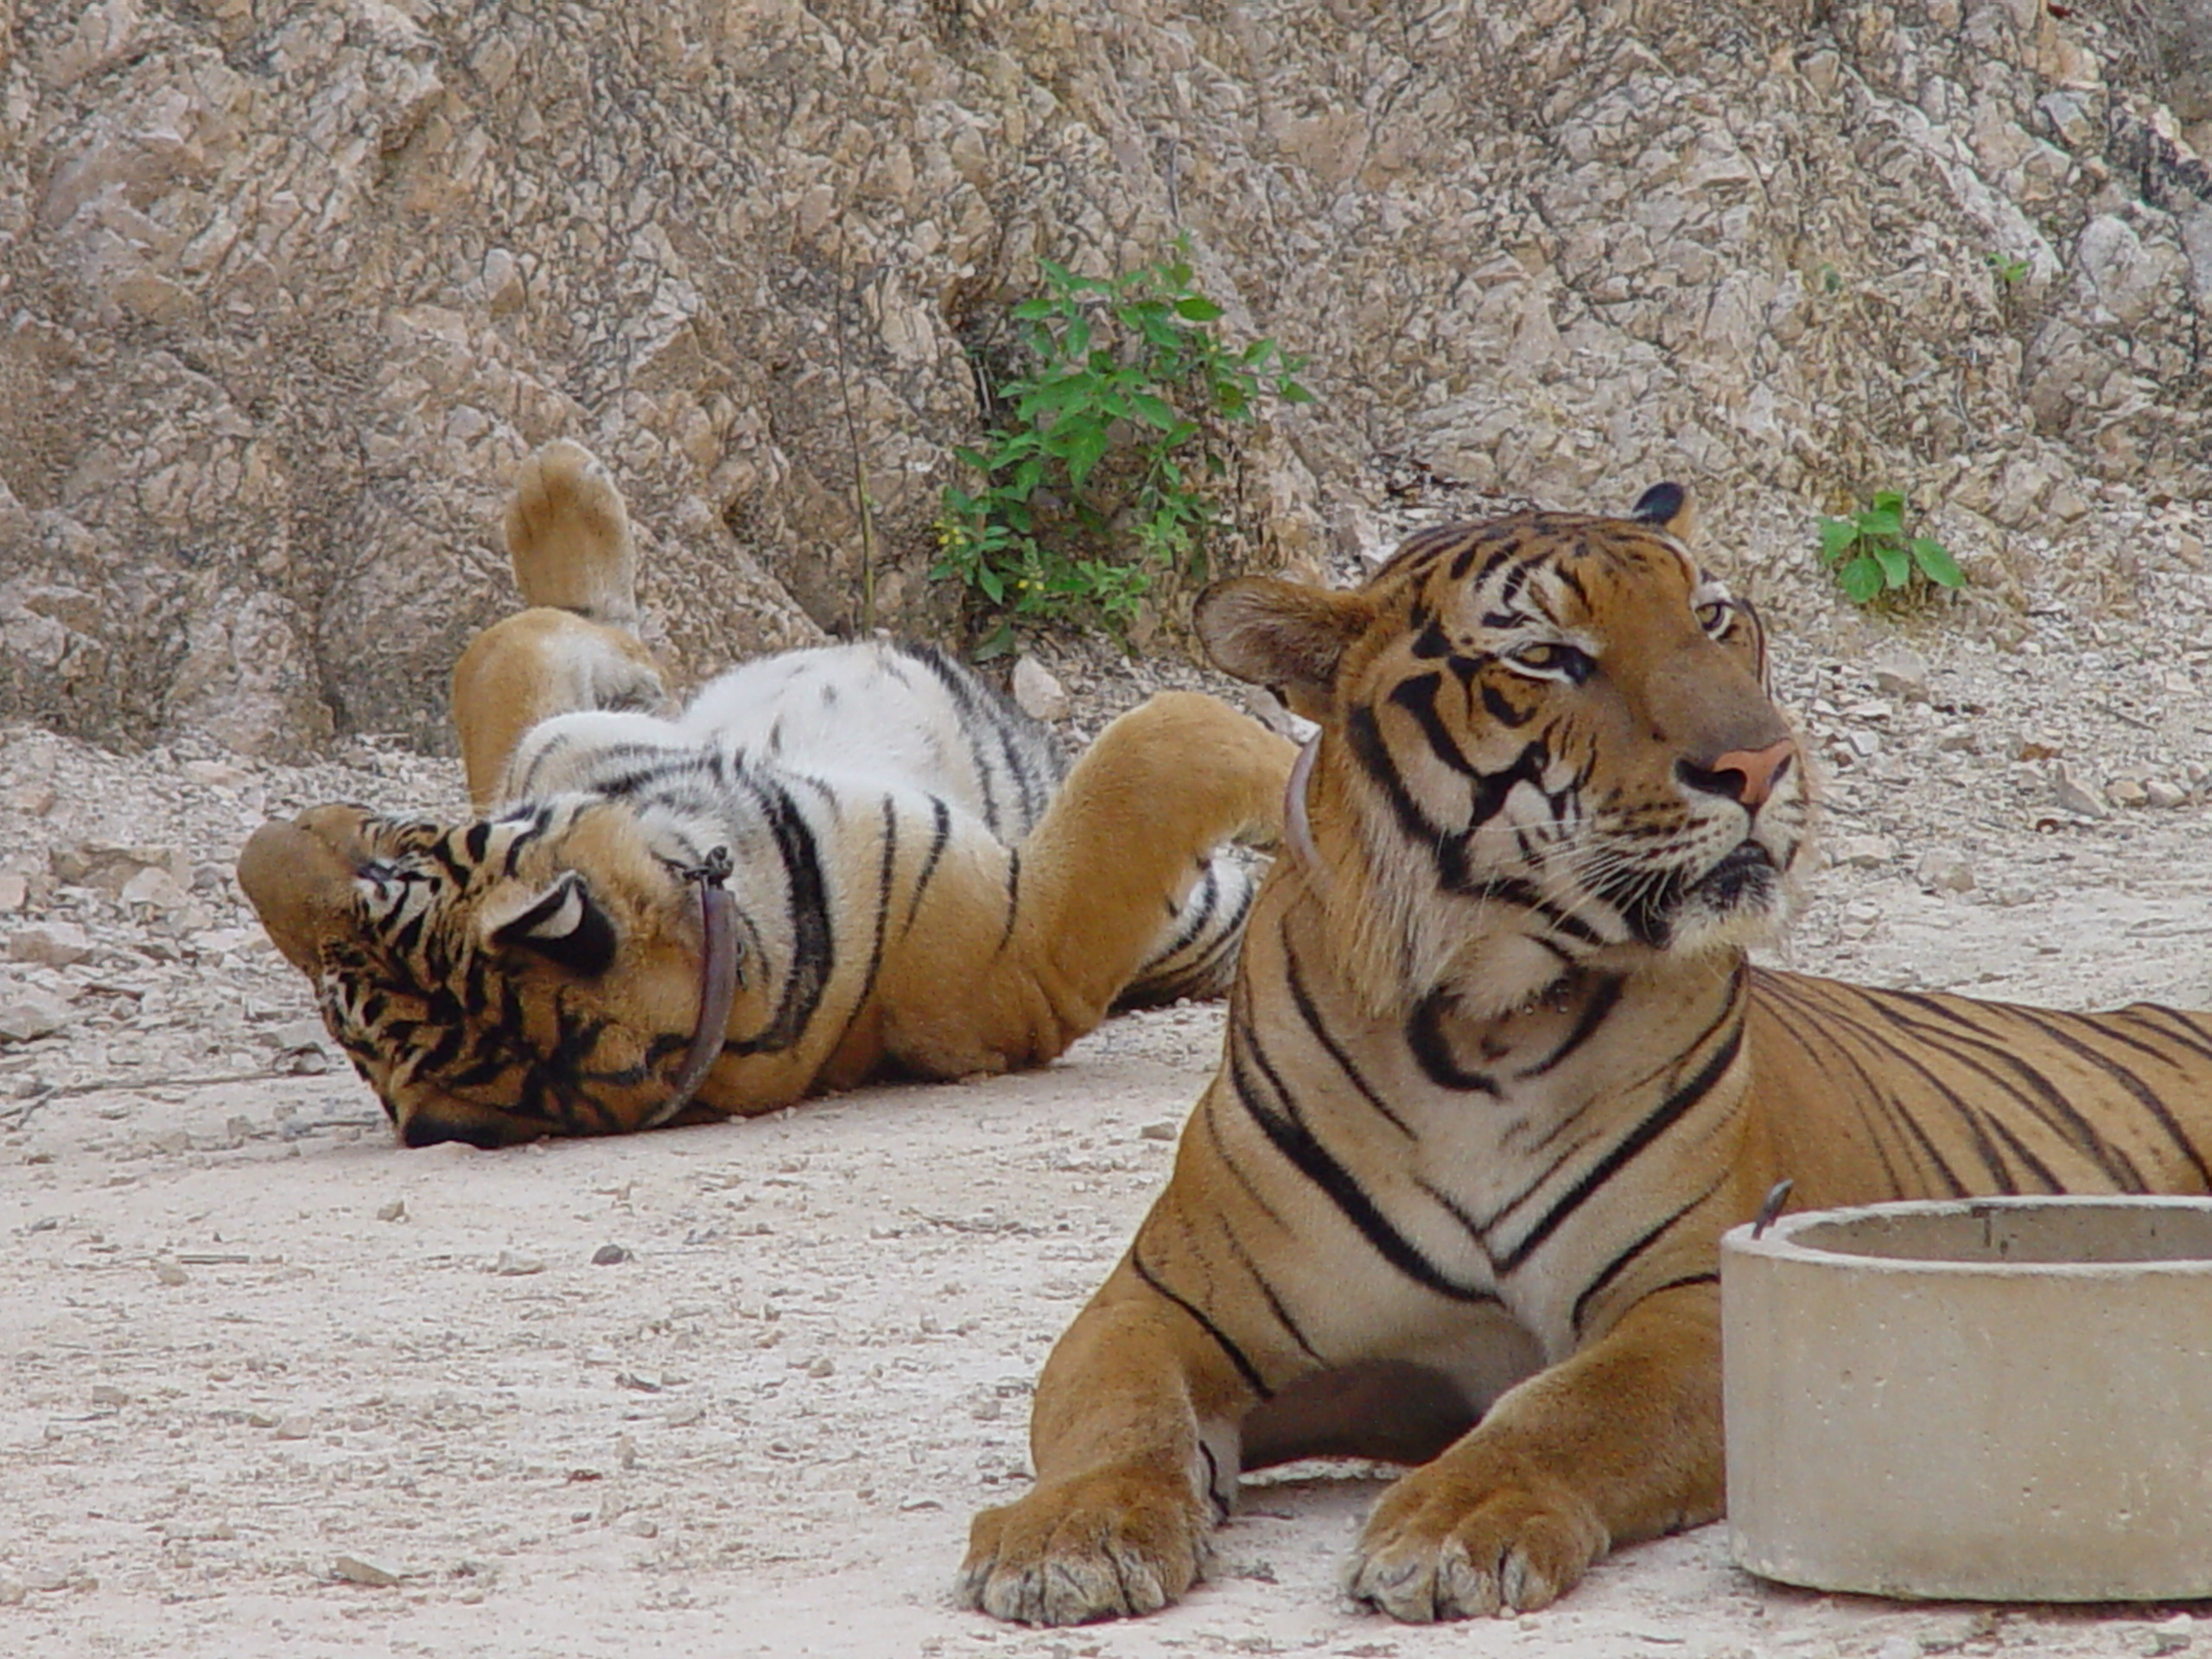 Tigers_in_the_Tiger_Temple,_Thailand